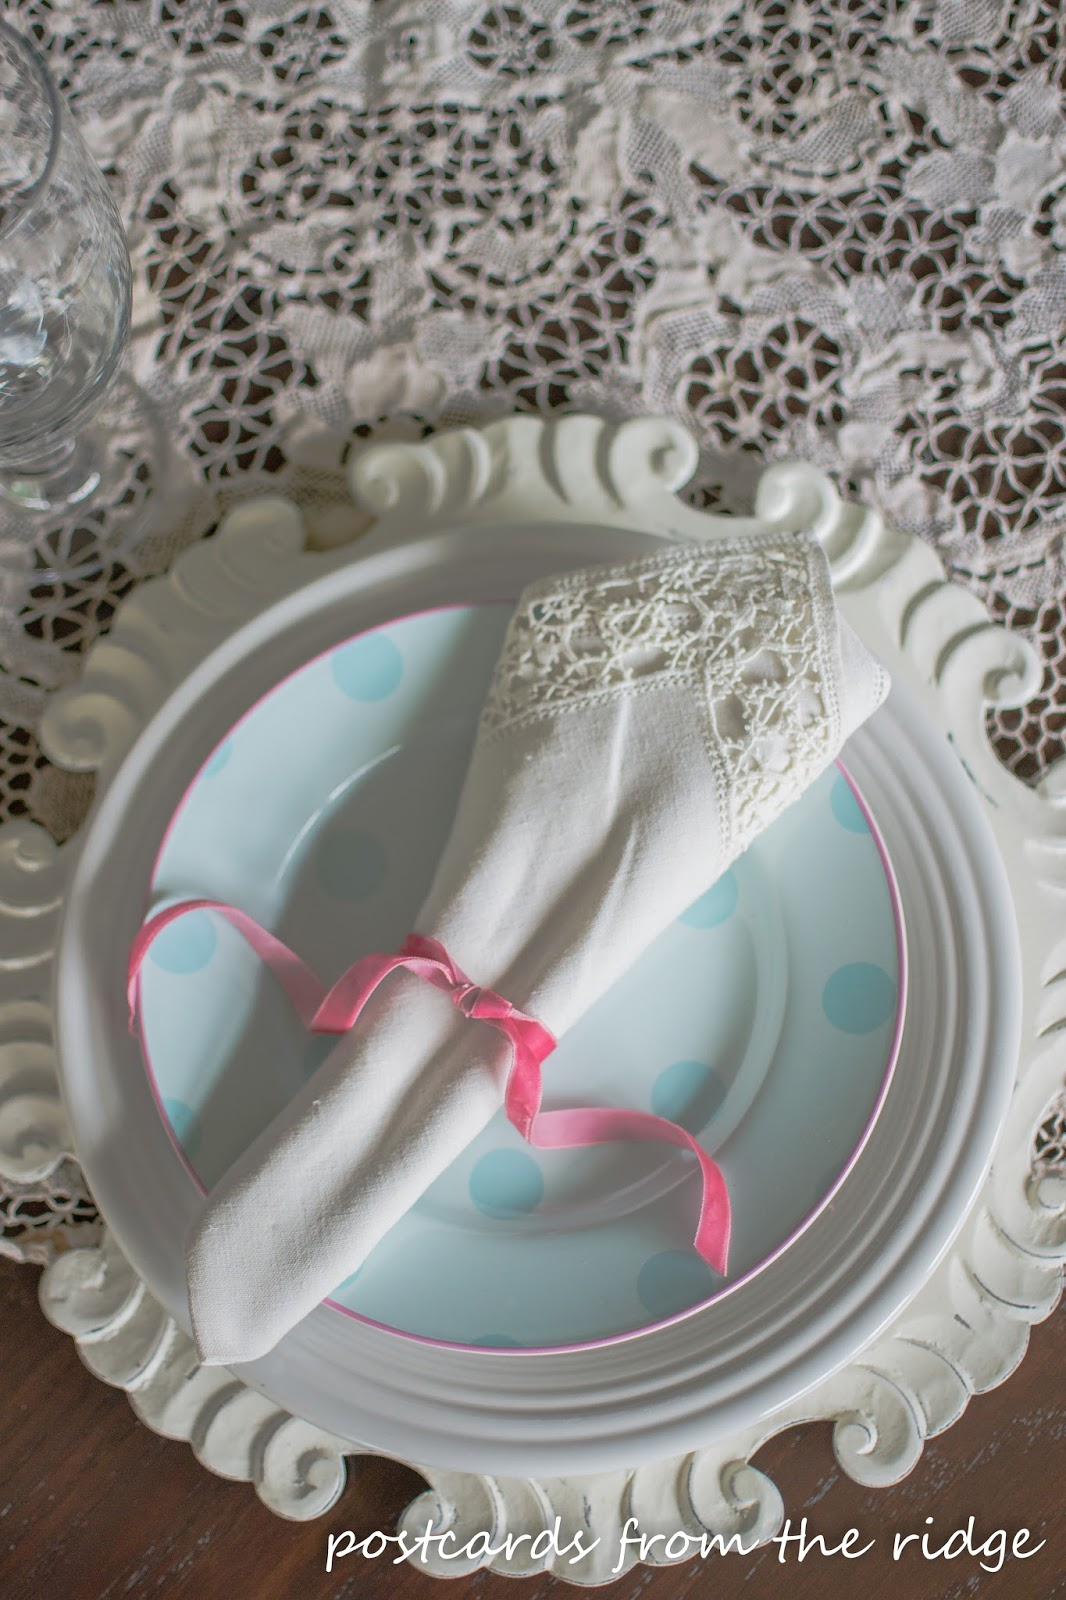 Spring table decor using vintage lace, pastel dishes, and velvet ribbon. Postcards from the Ridge